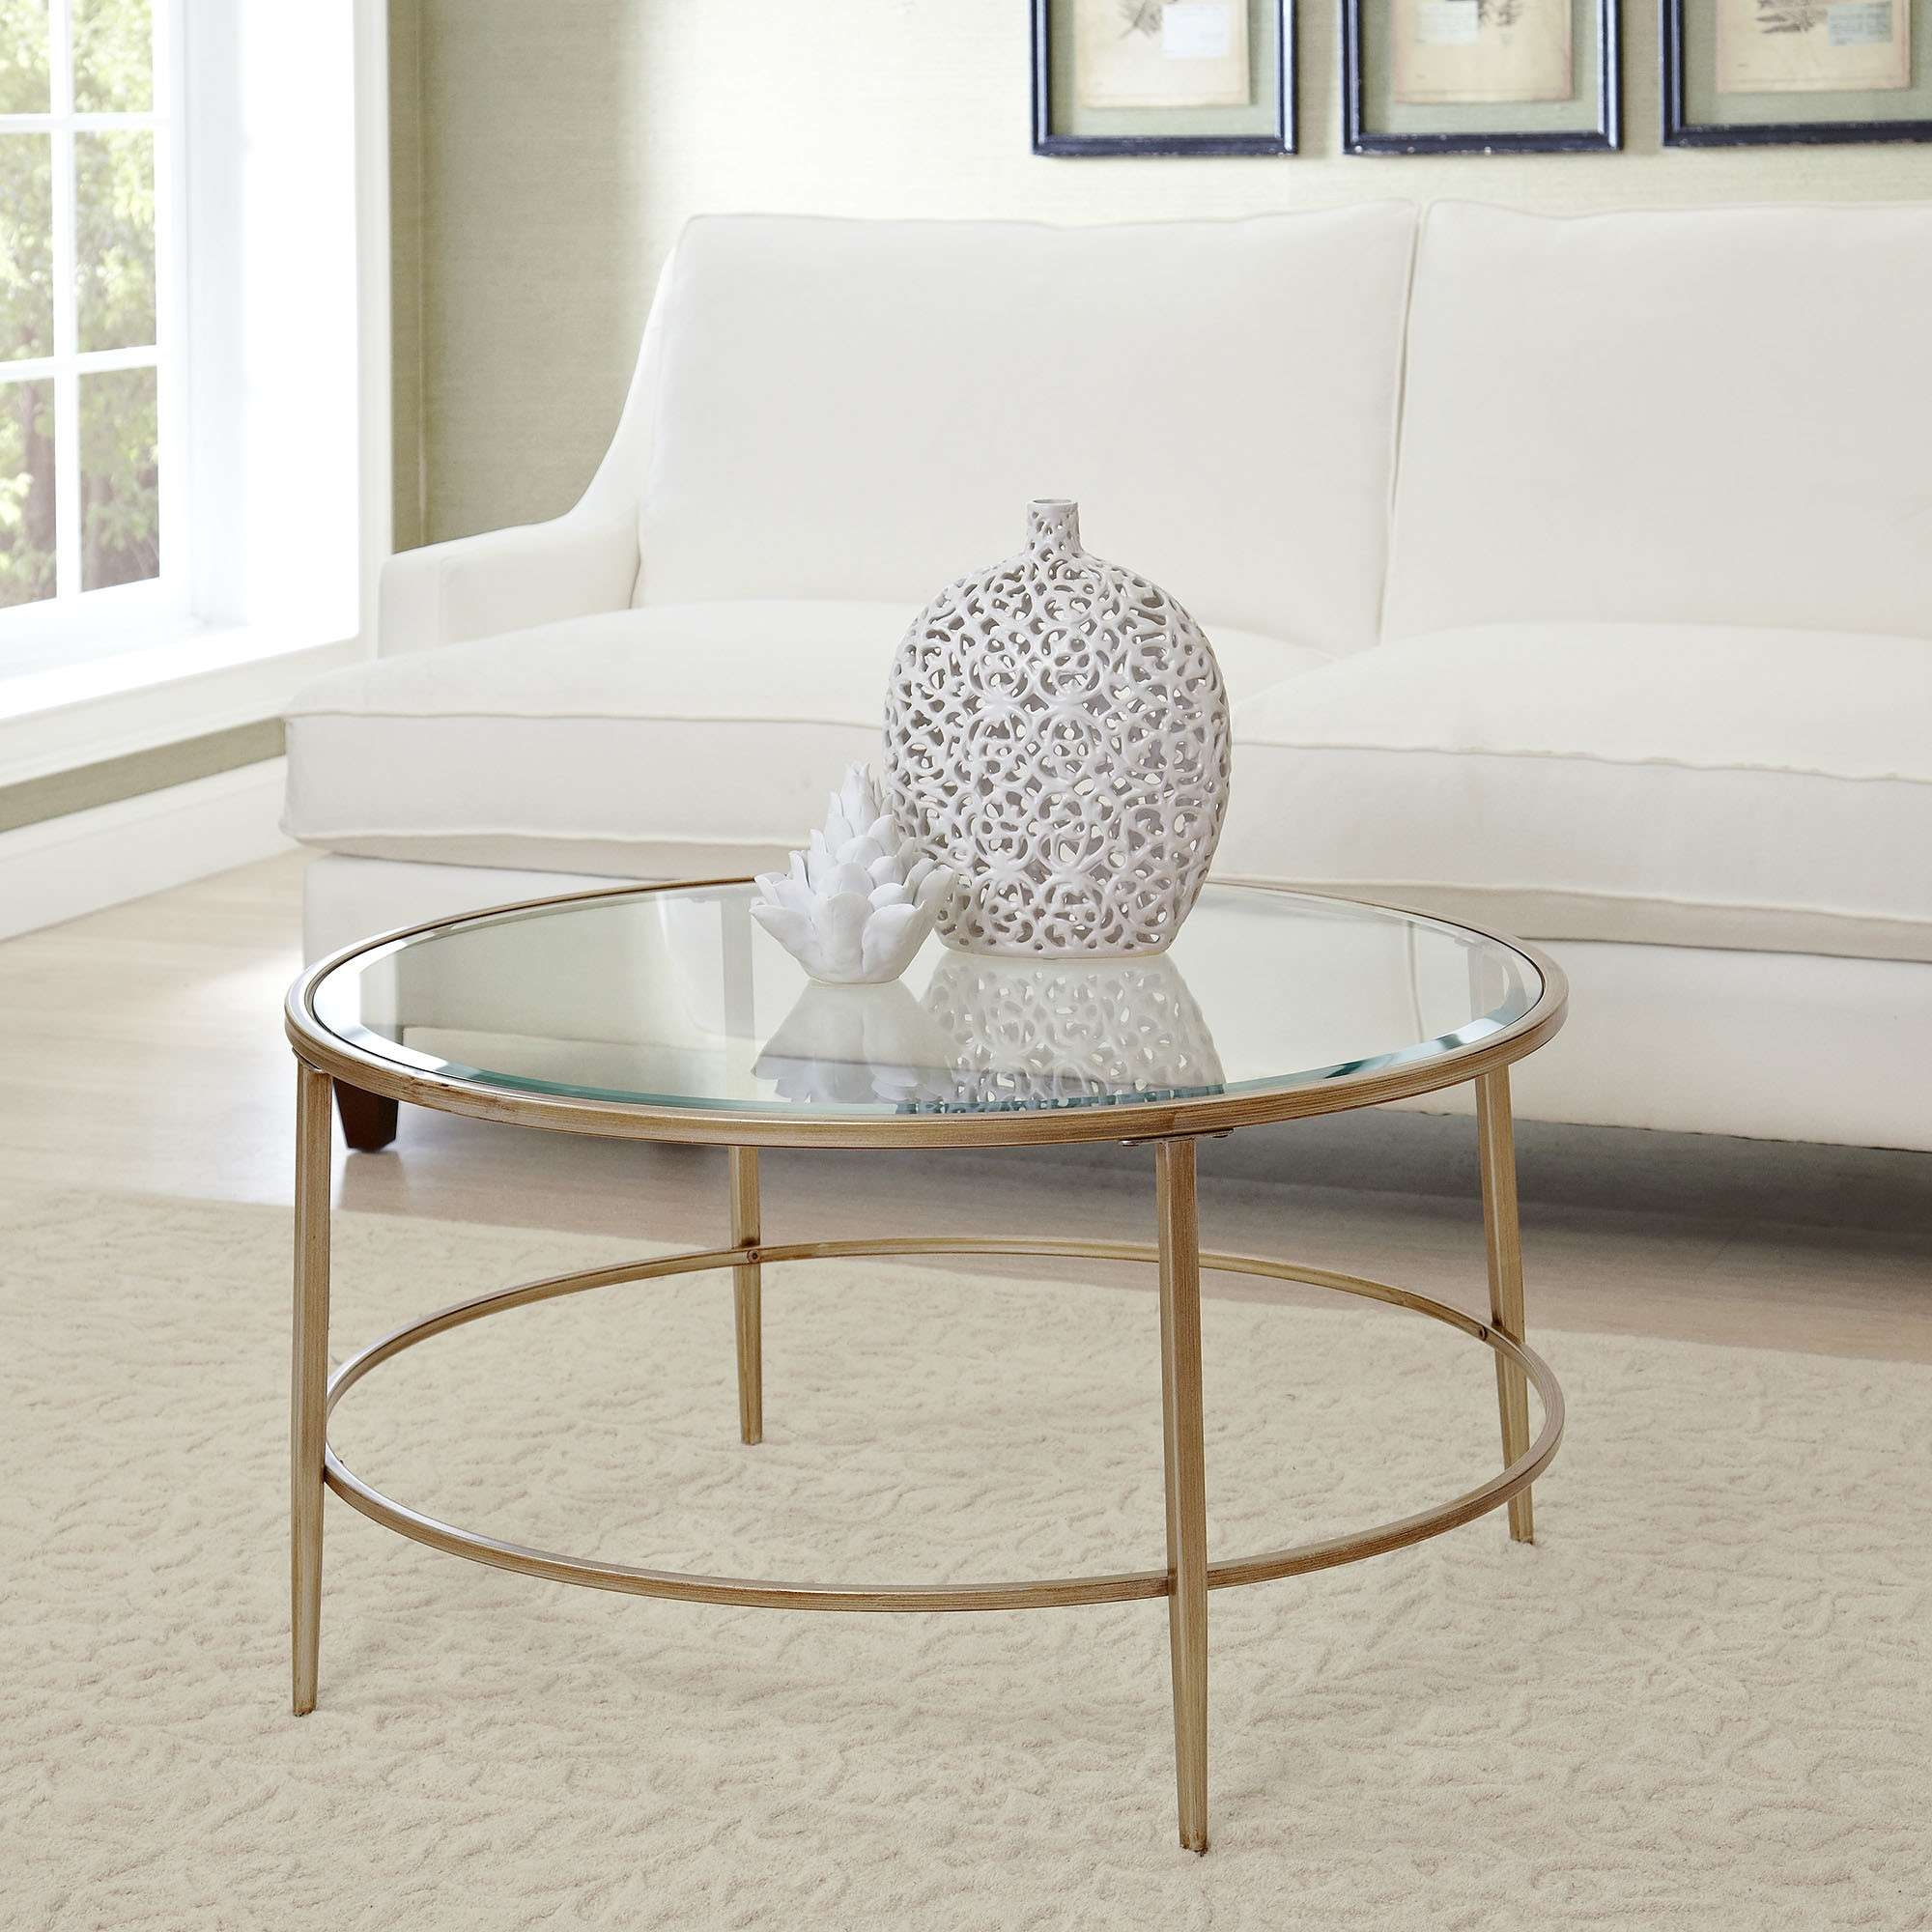 Coffee Tables : Coffee Table Wayfair Glass In Splendid Round In Most Recently Released Wayfair Coffee Tables (View 5 of 20)